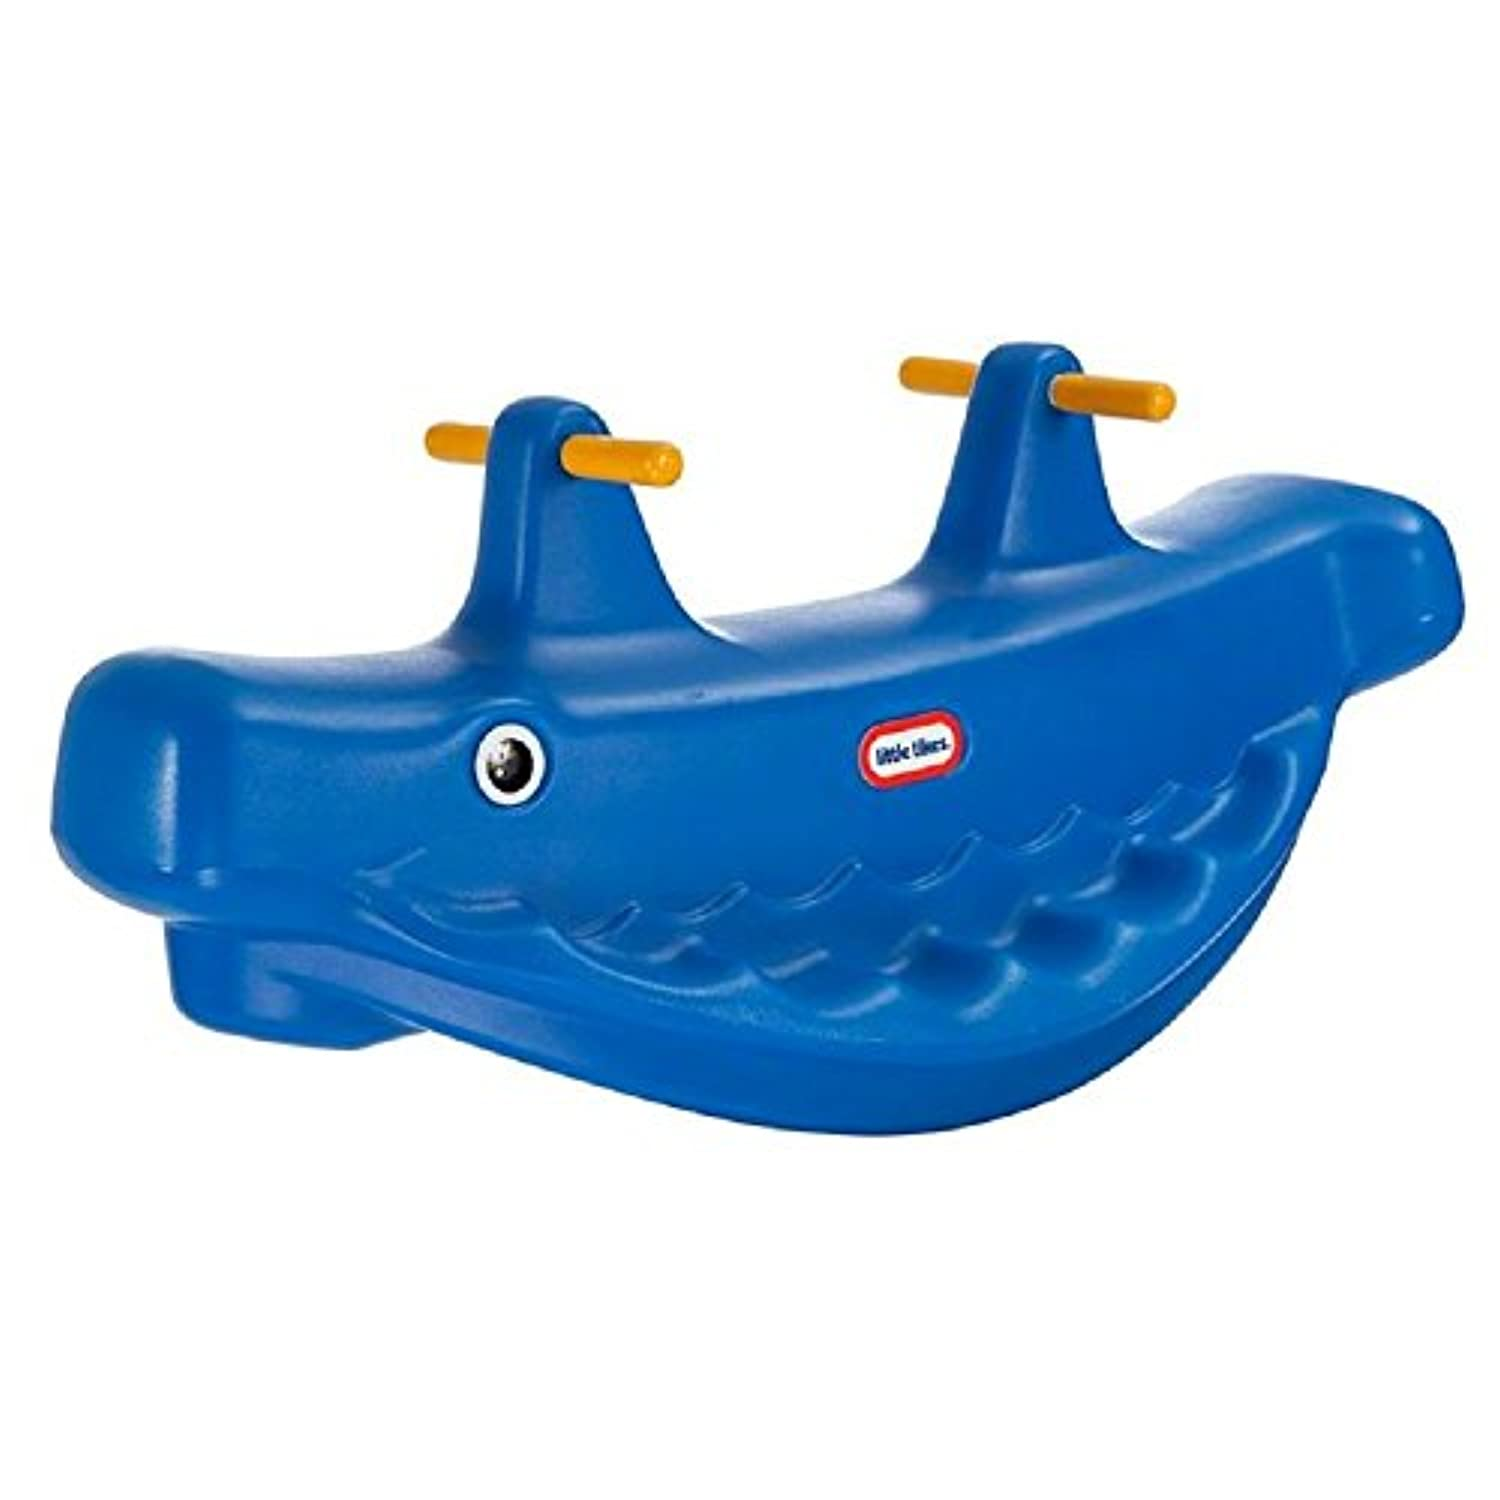 Little Tikes Classic Whale Teeter Totter in Green by Little Tikes [Toy] [並行輸入品]